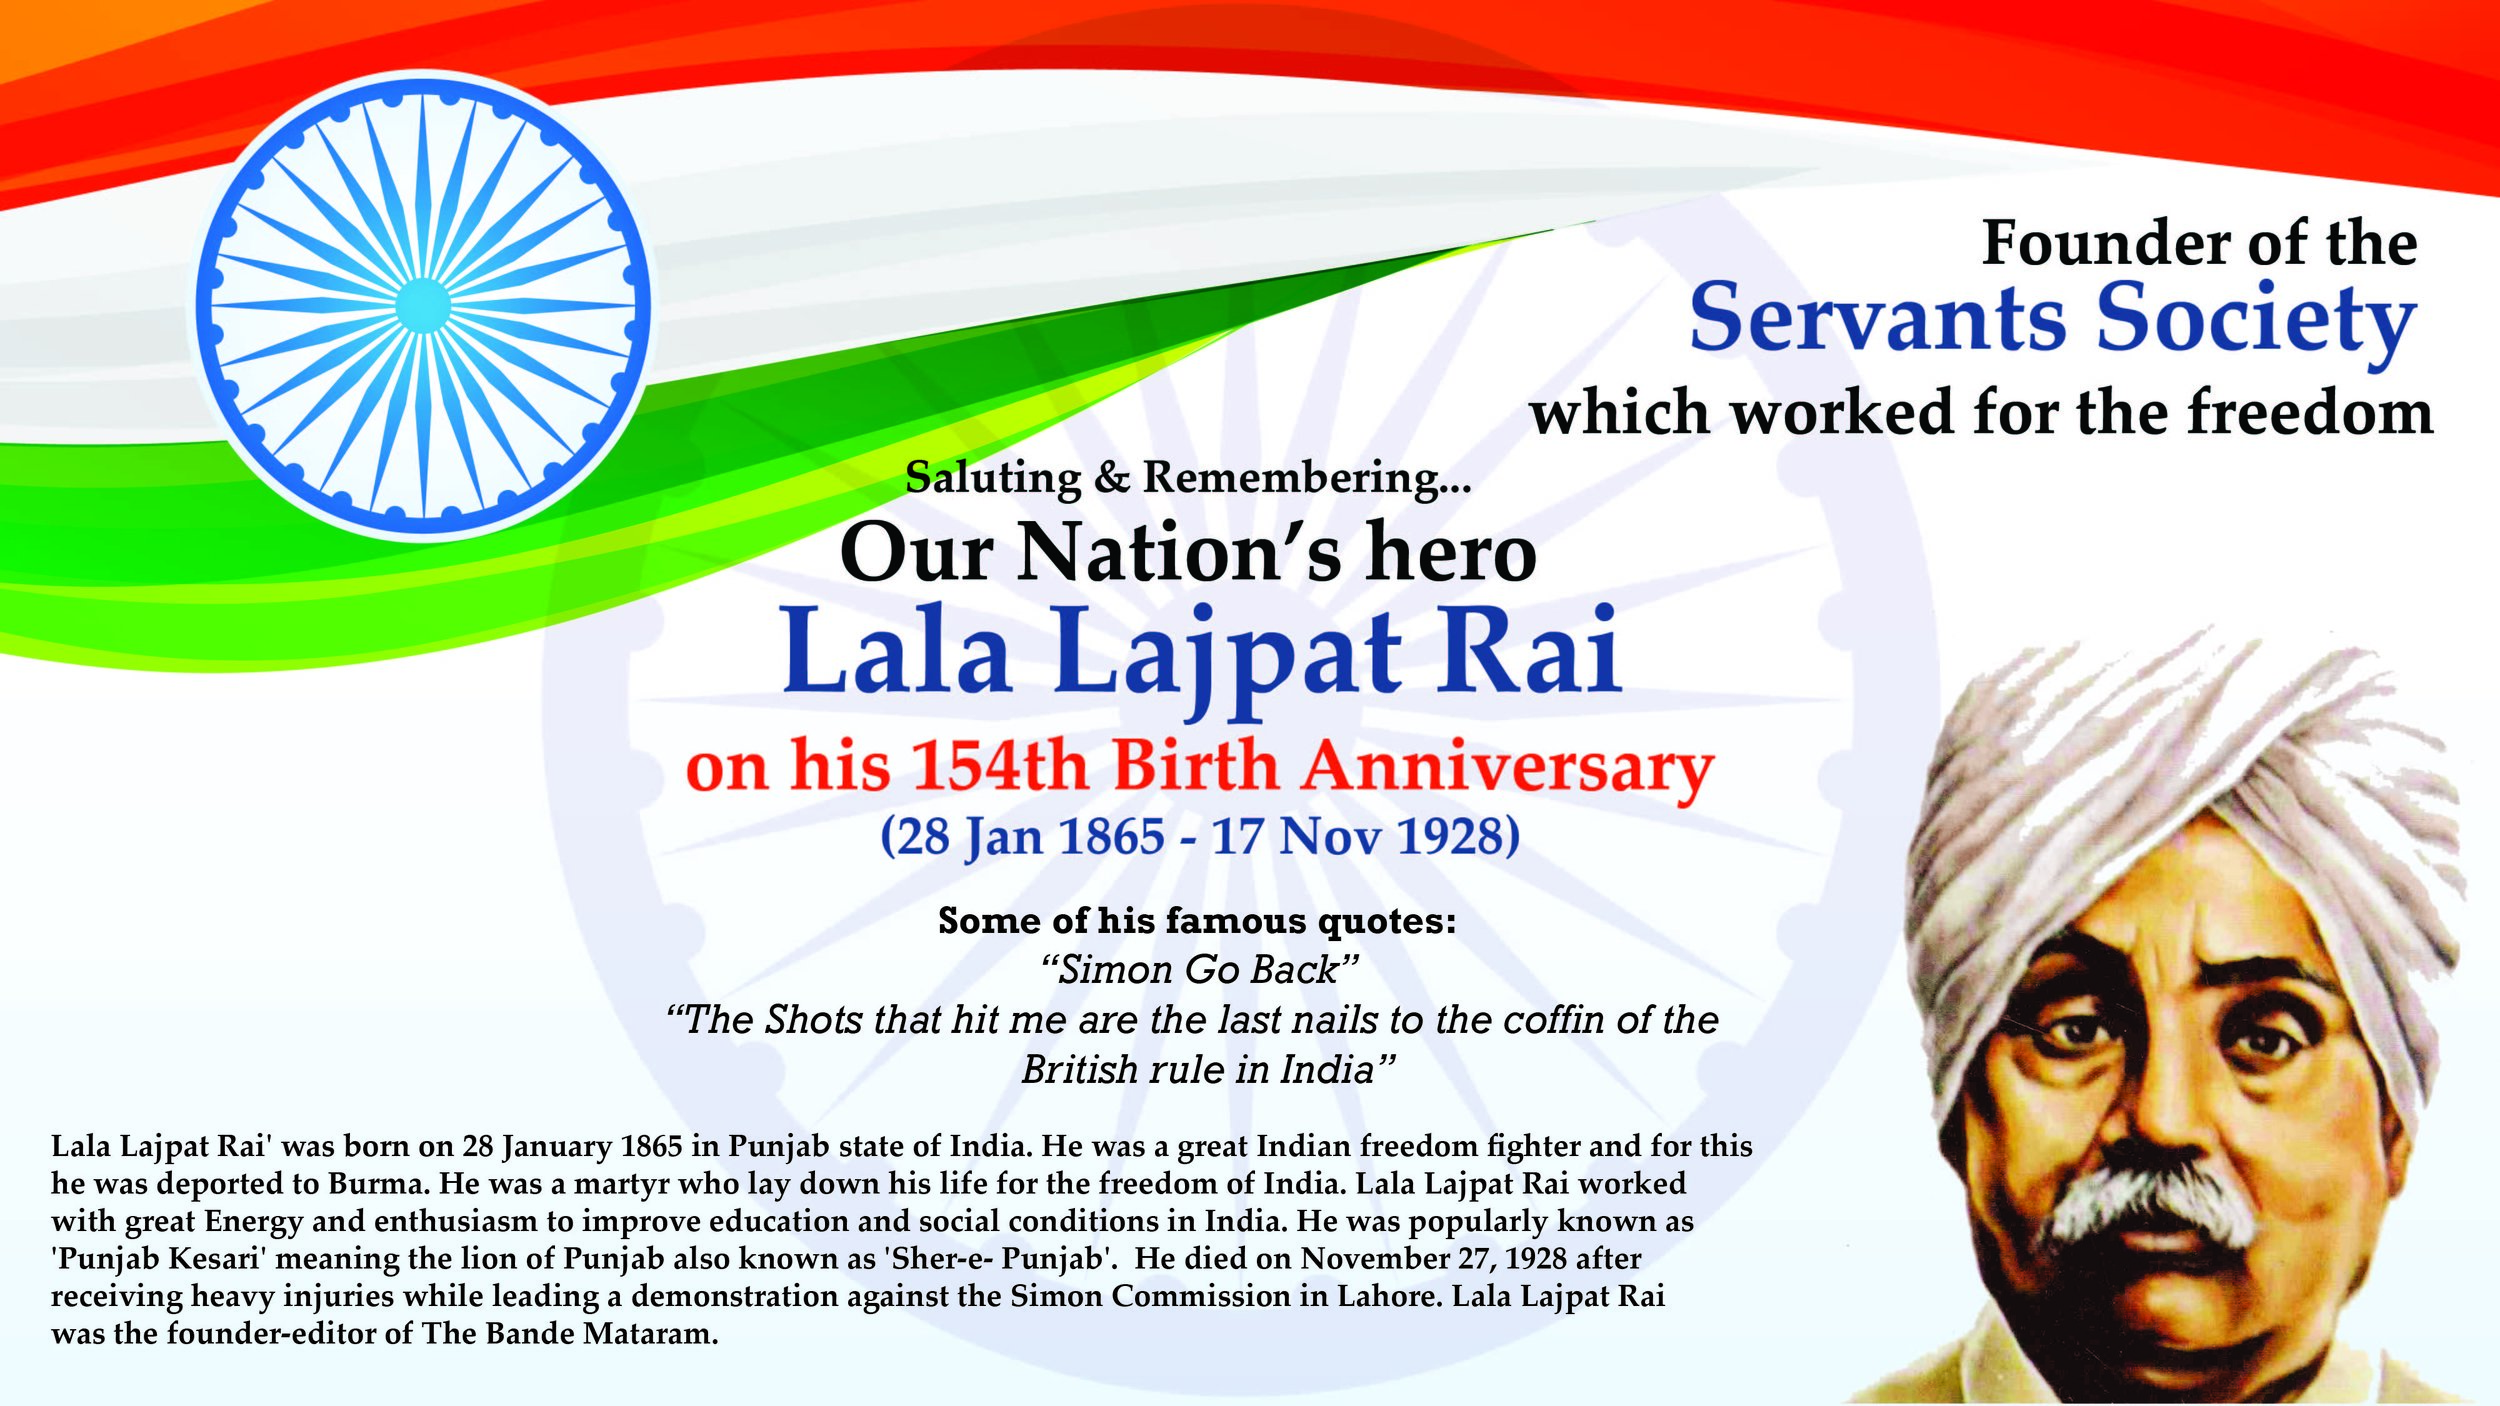 LALA LAJPAT RAI  (28th Jan 1865 - 17th Nov 1928)